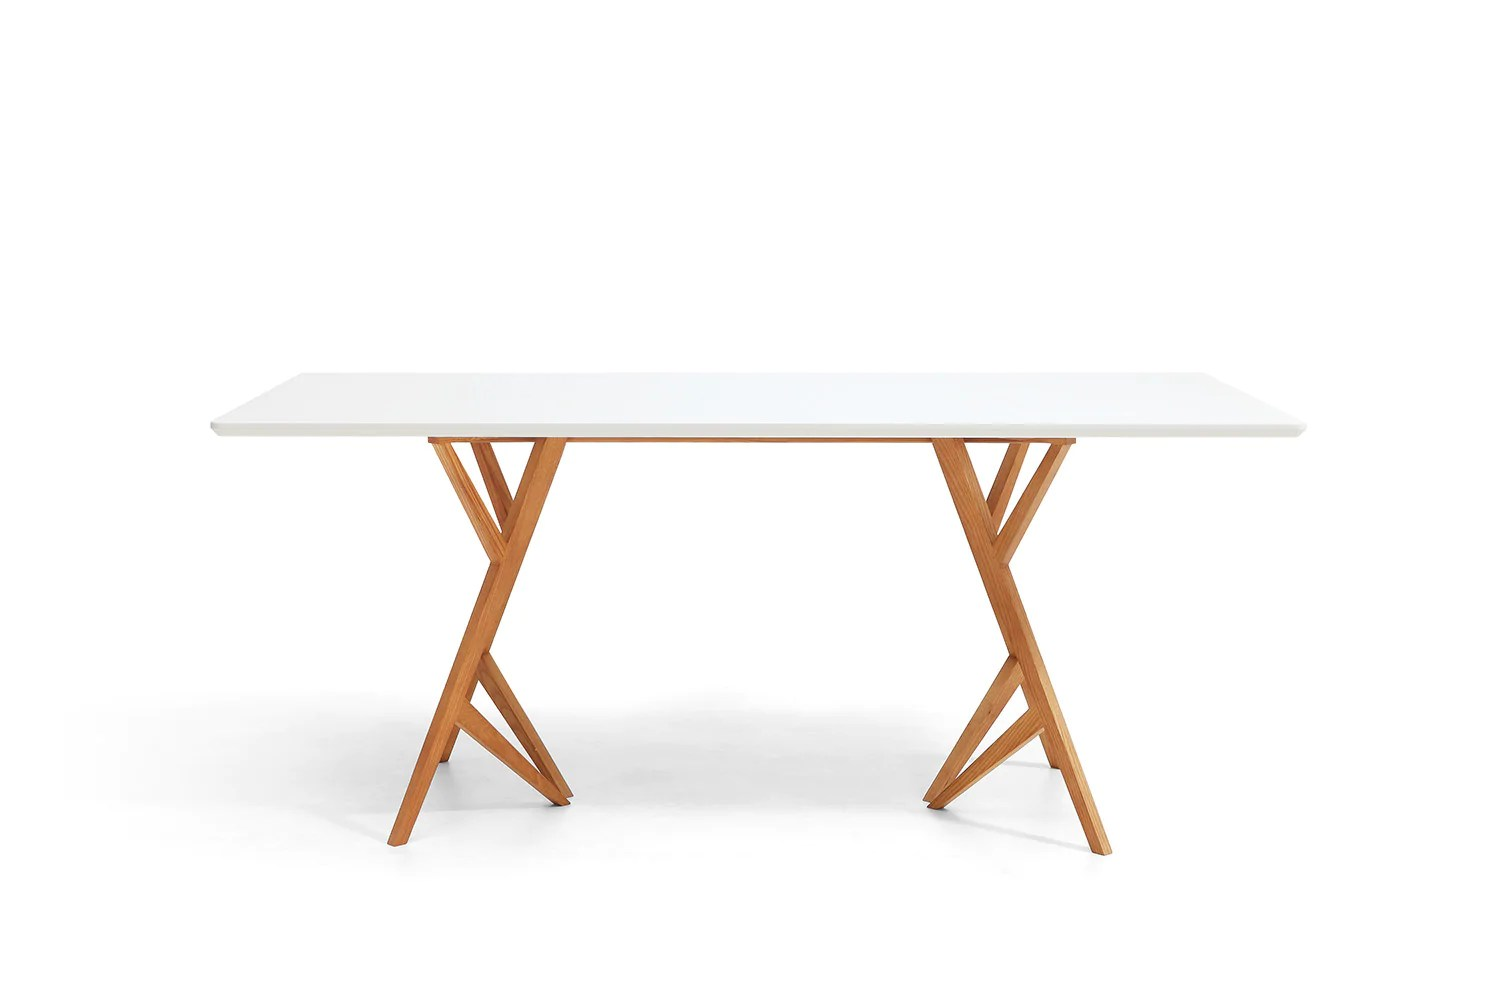 Table Blanche Rectangulaire Table De Salle à Manger Design Scandinave Vispa Dewarens